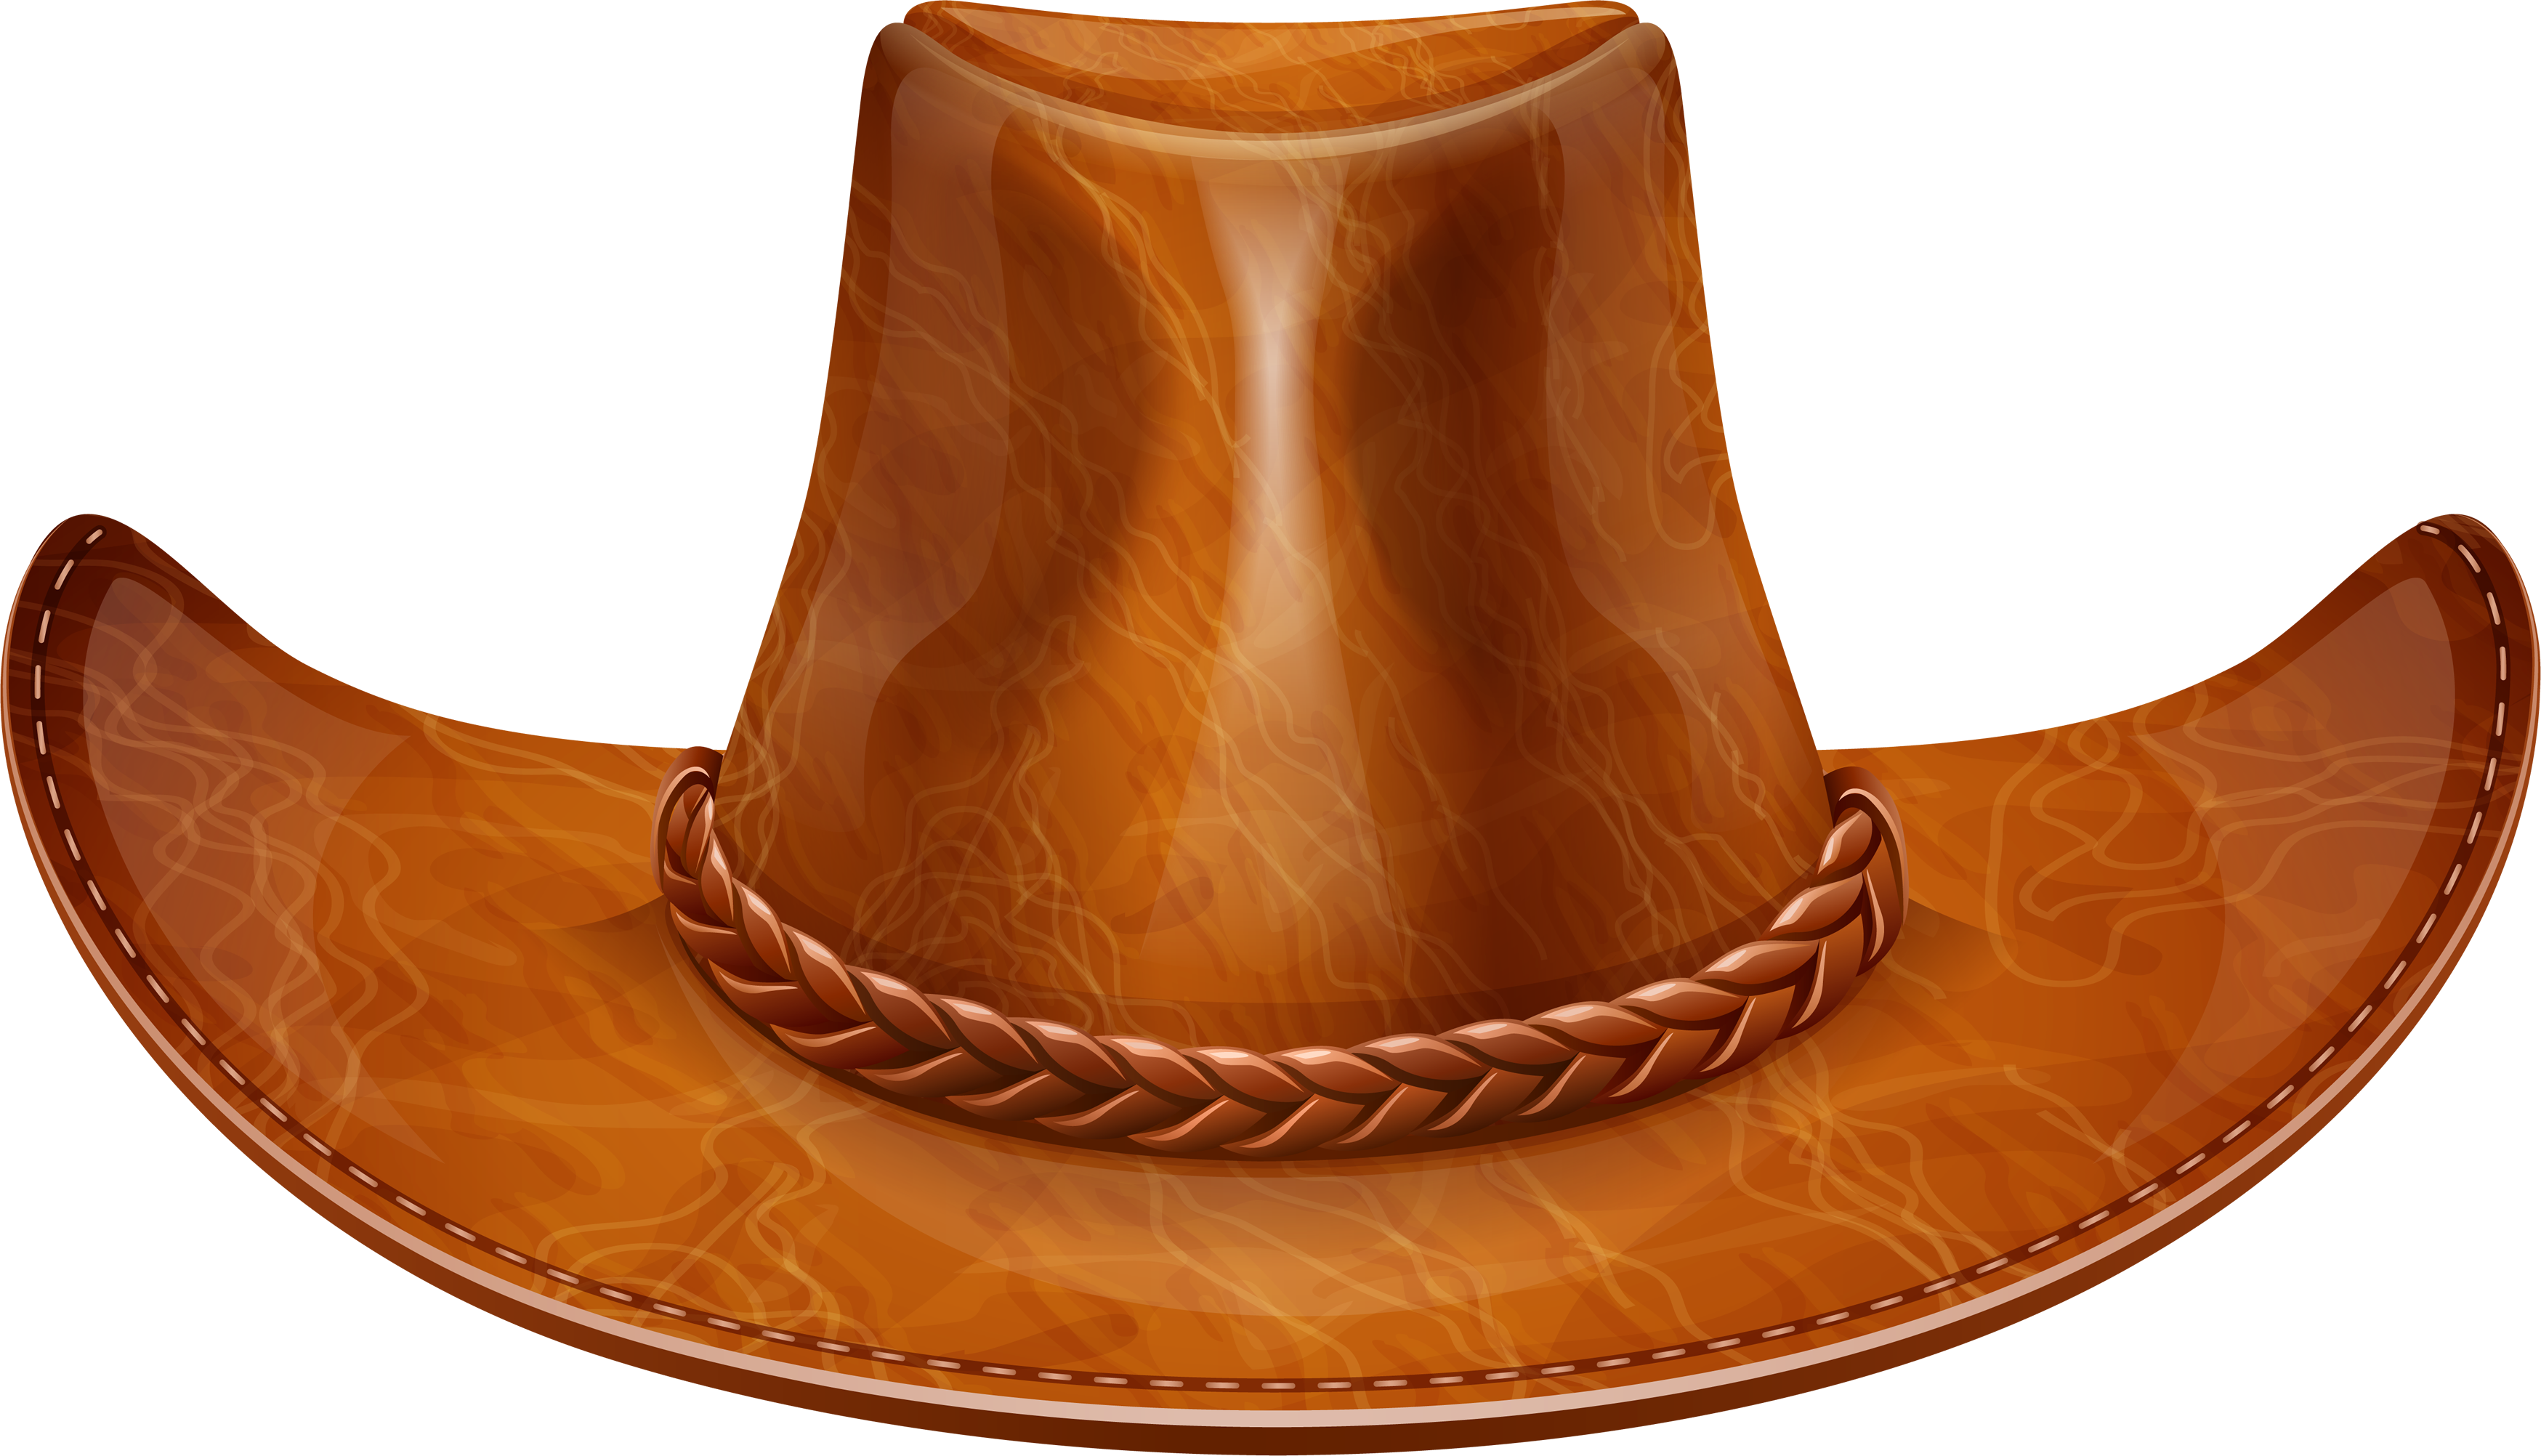 Mexican cowboy hat png. Images free download hats